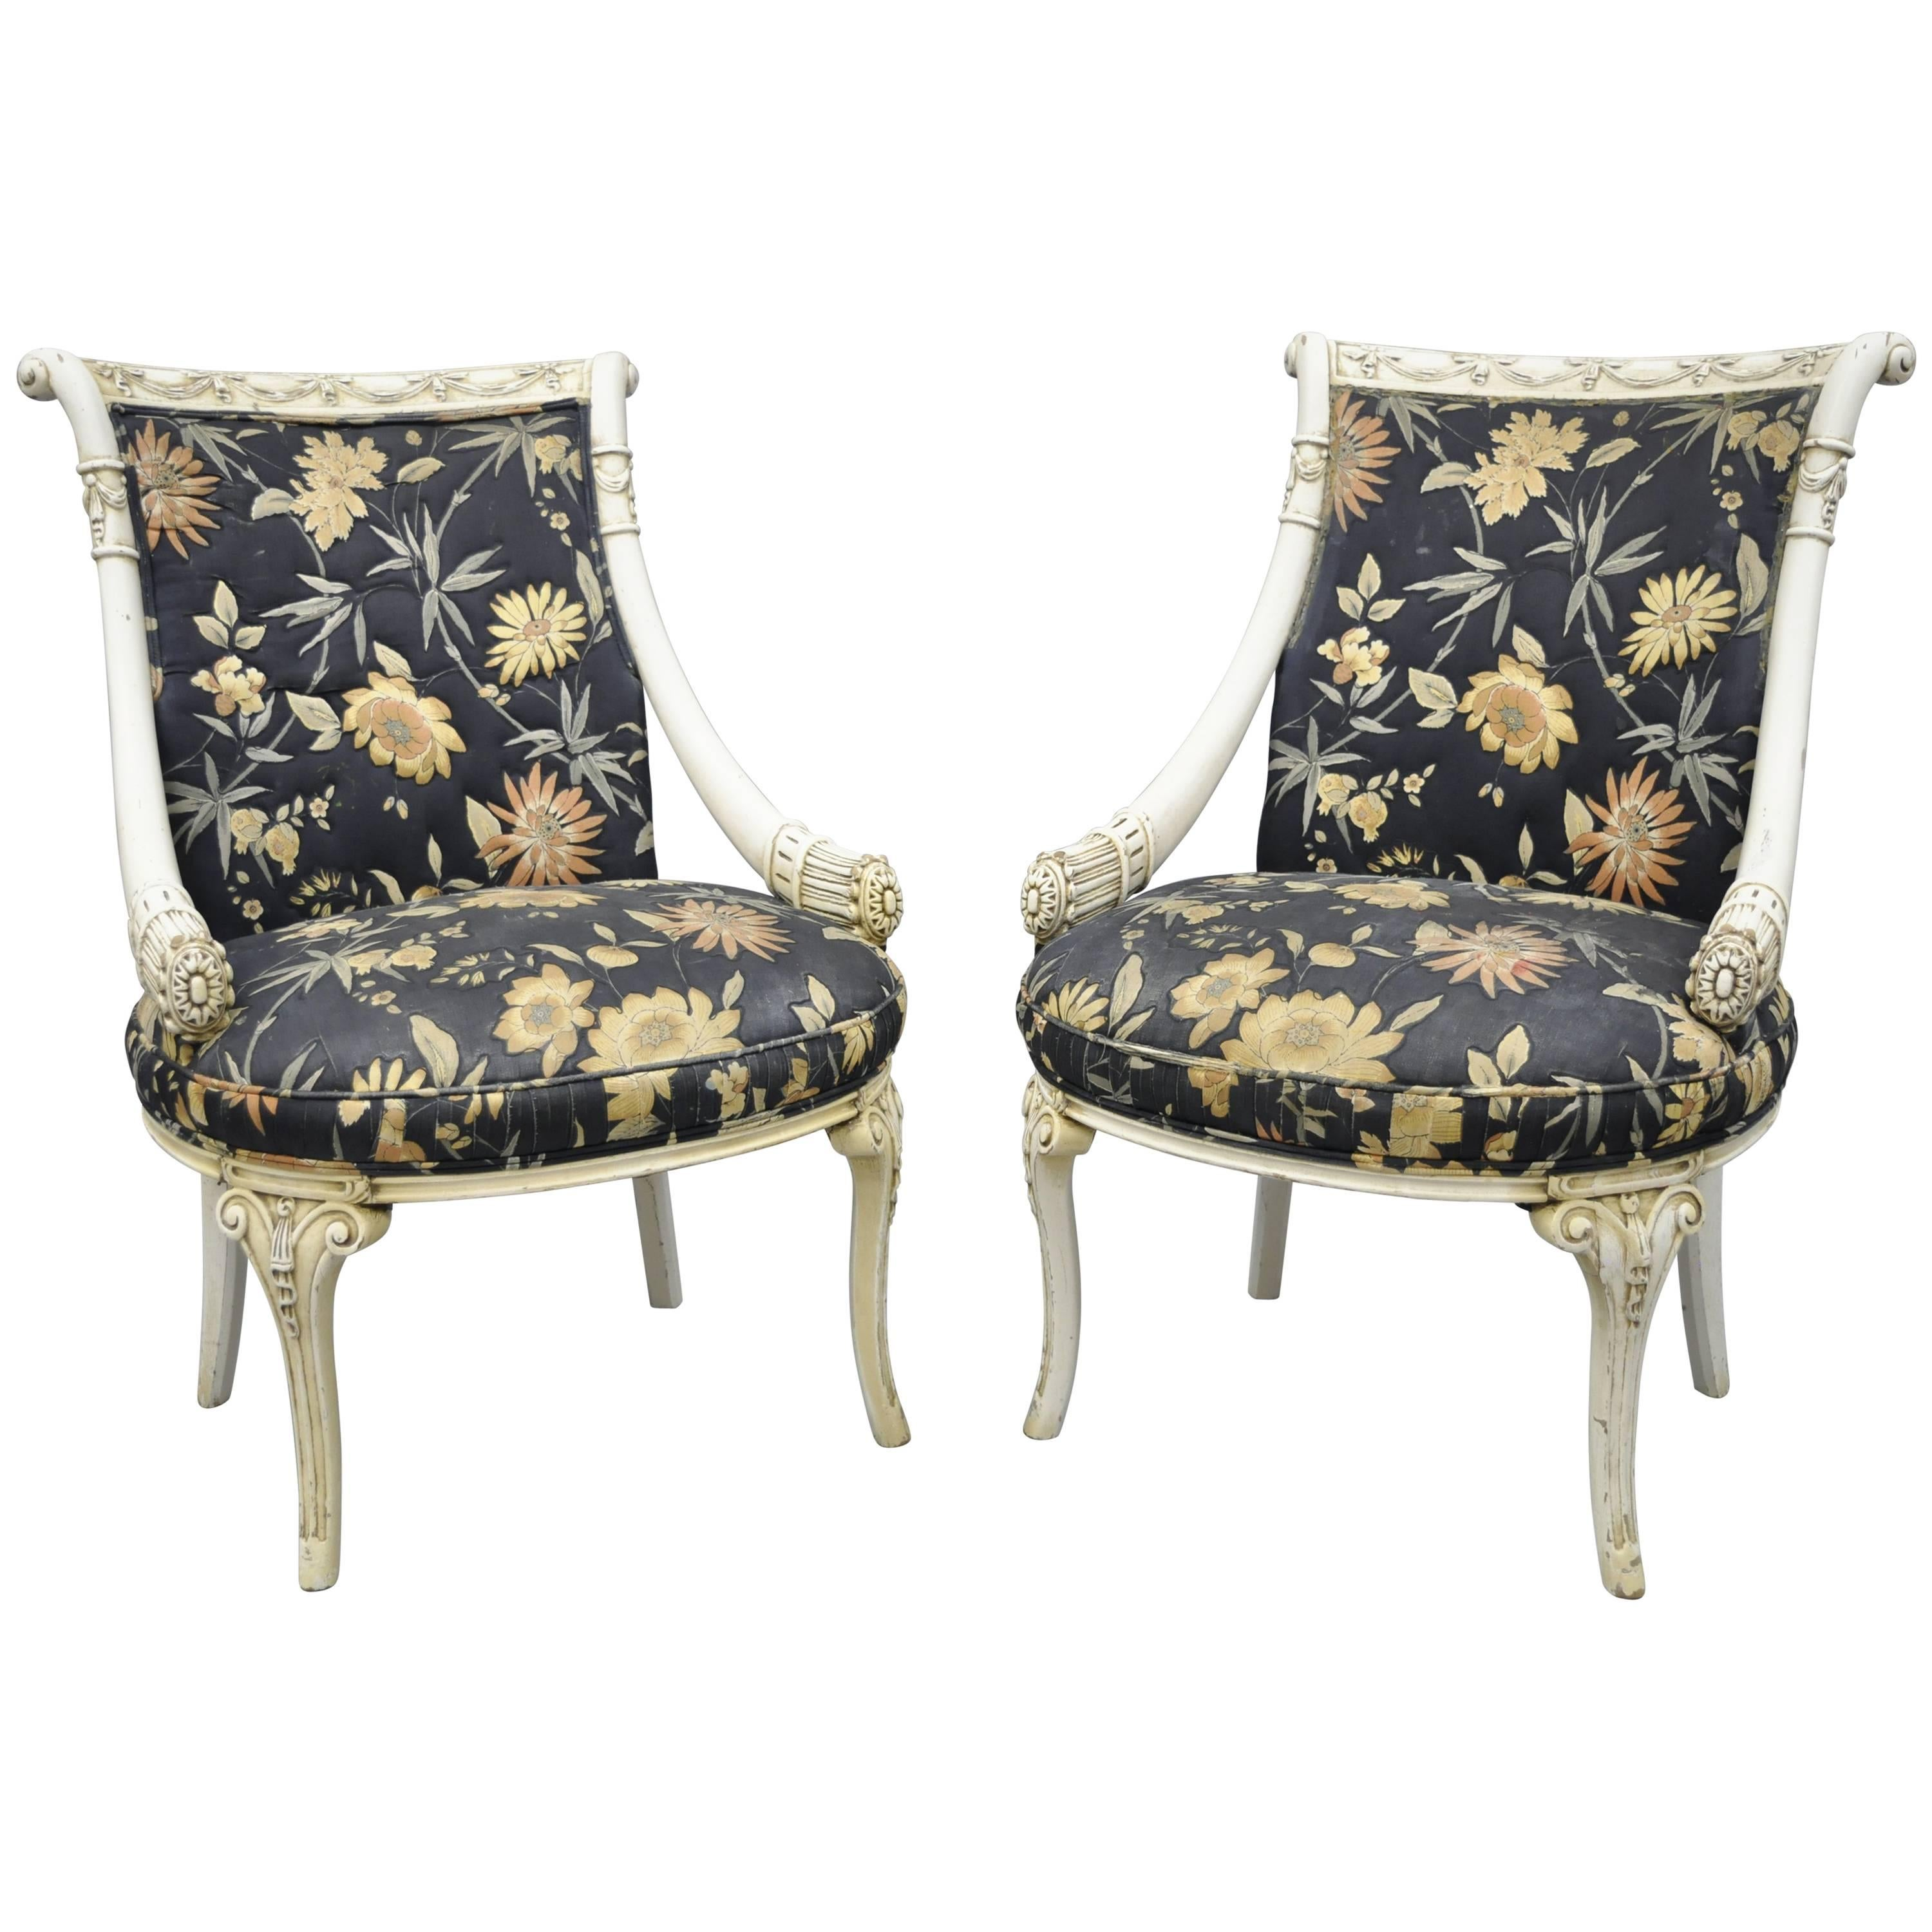 Pair of French Hollywood Regency Carved Cornucopia Chairs after Grosfeld House